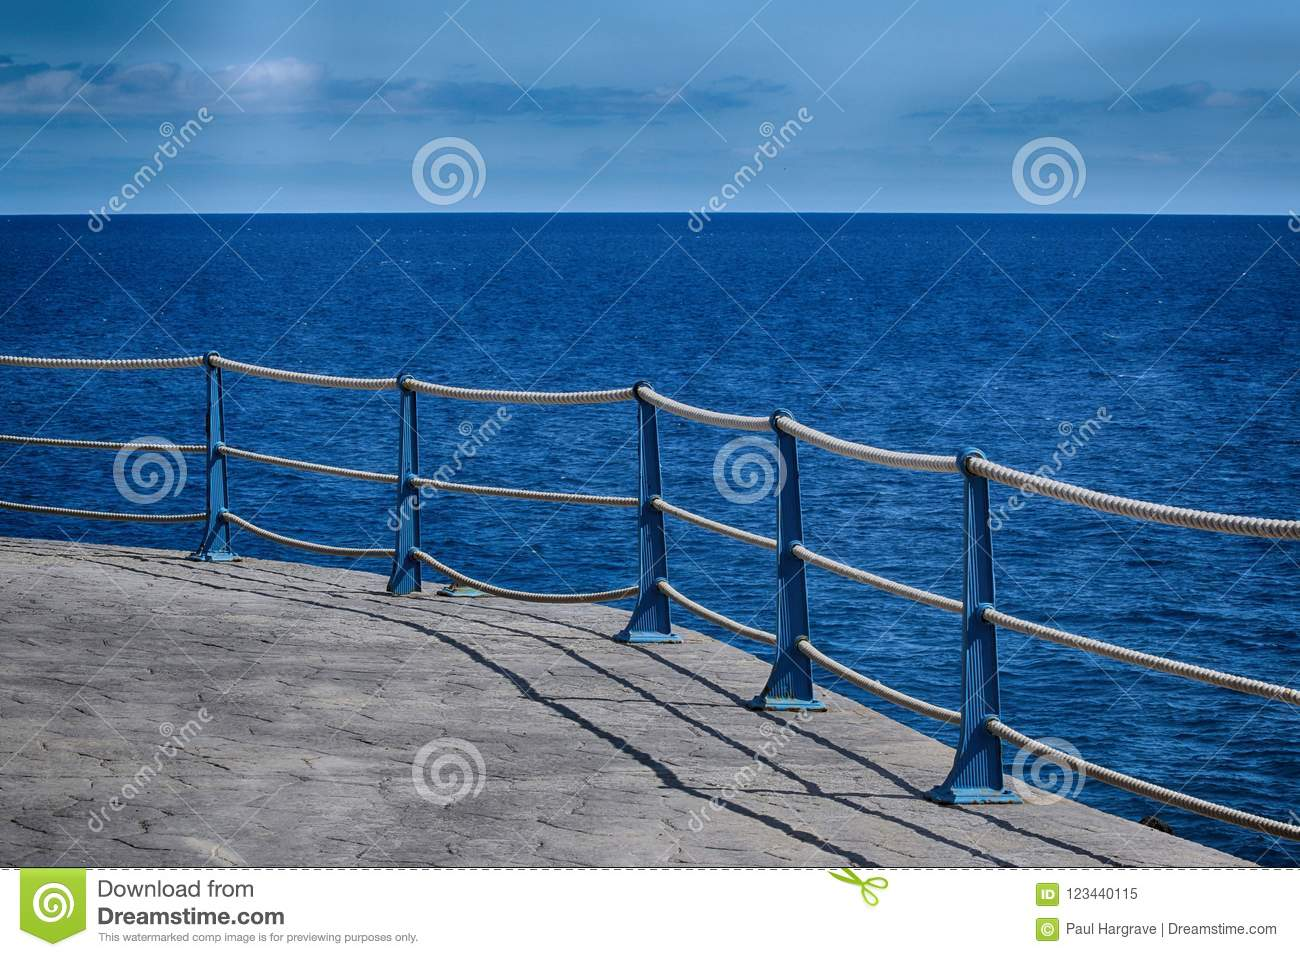 Detail of Sea Wall Roped Barrier